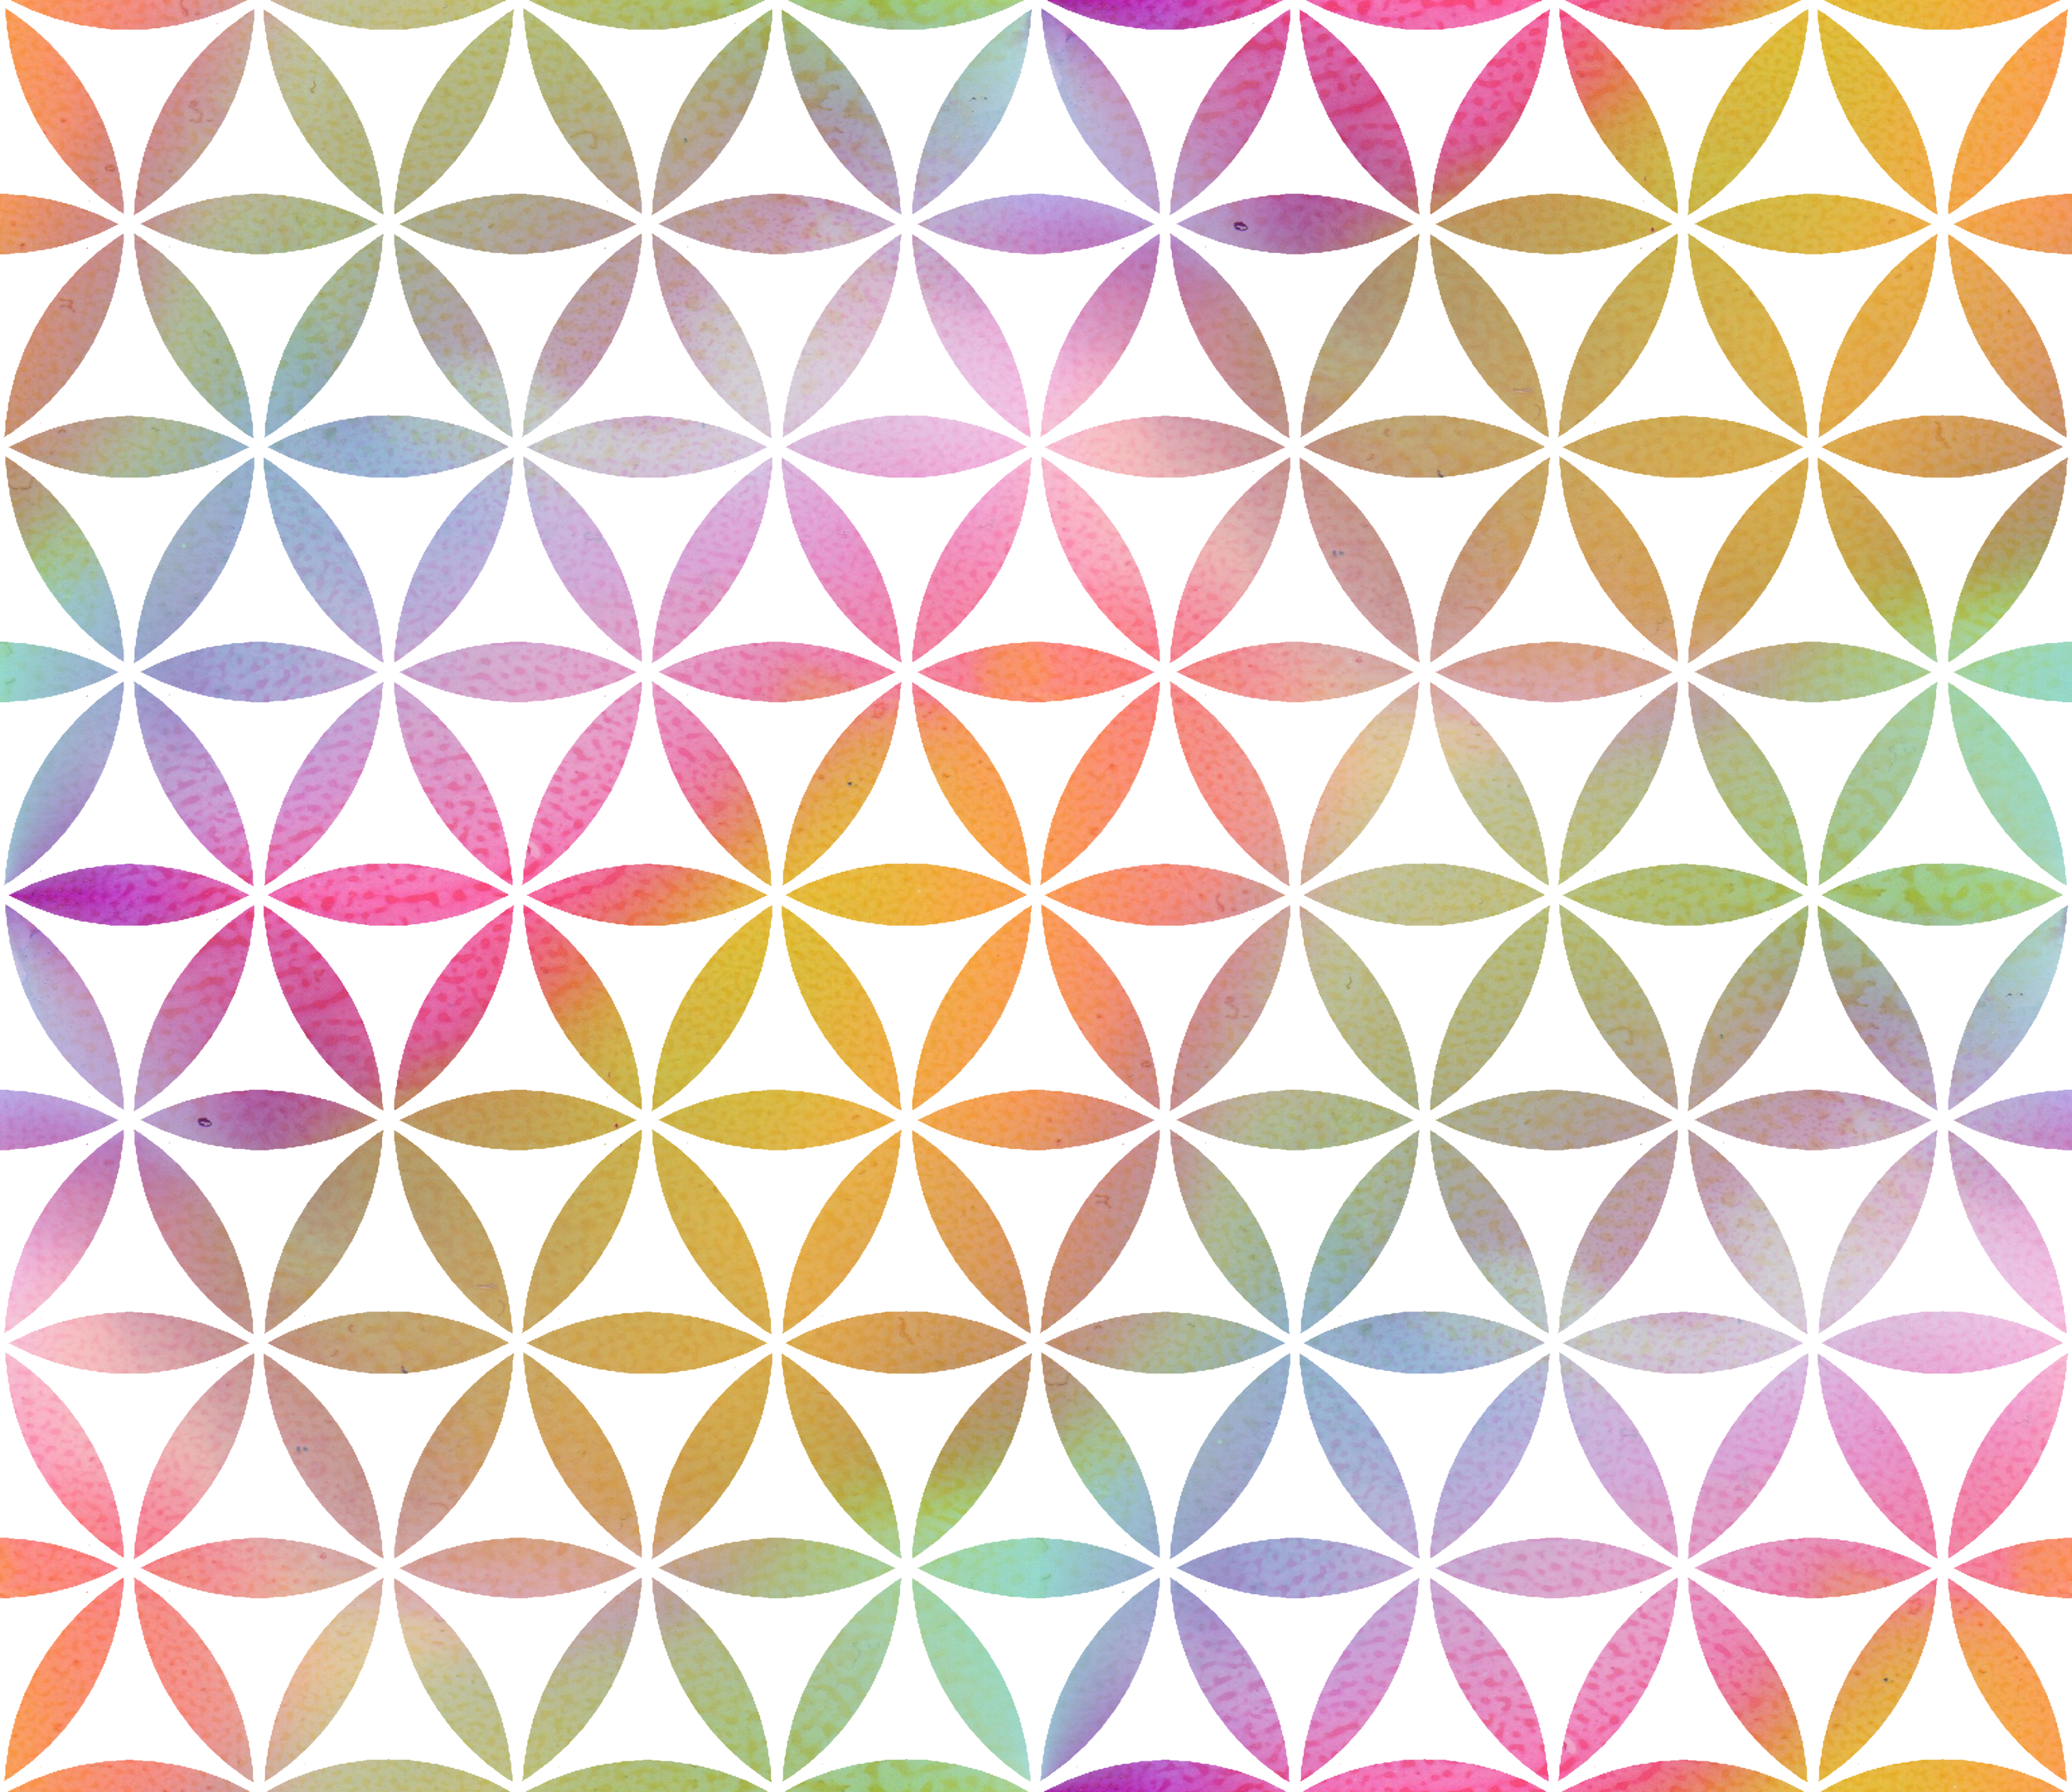 6629507_rrainbow_geo_flowers_white.png